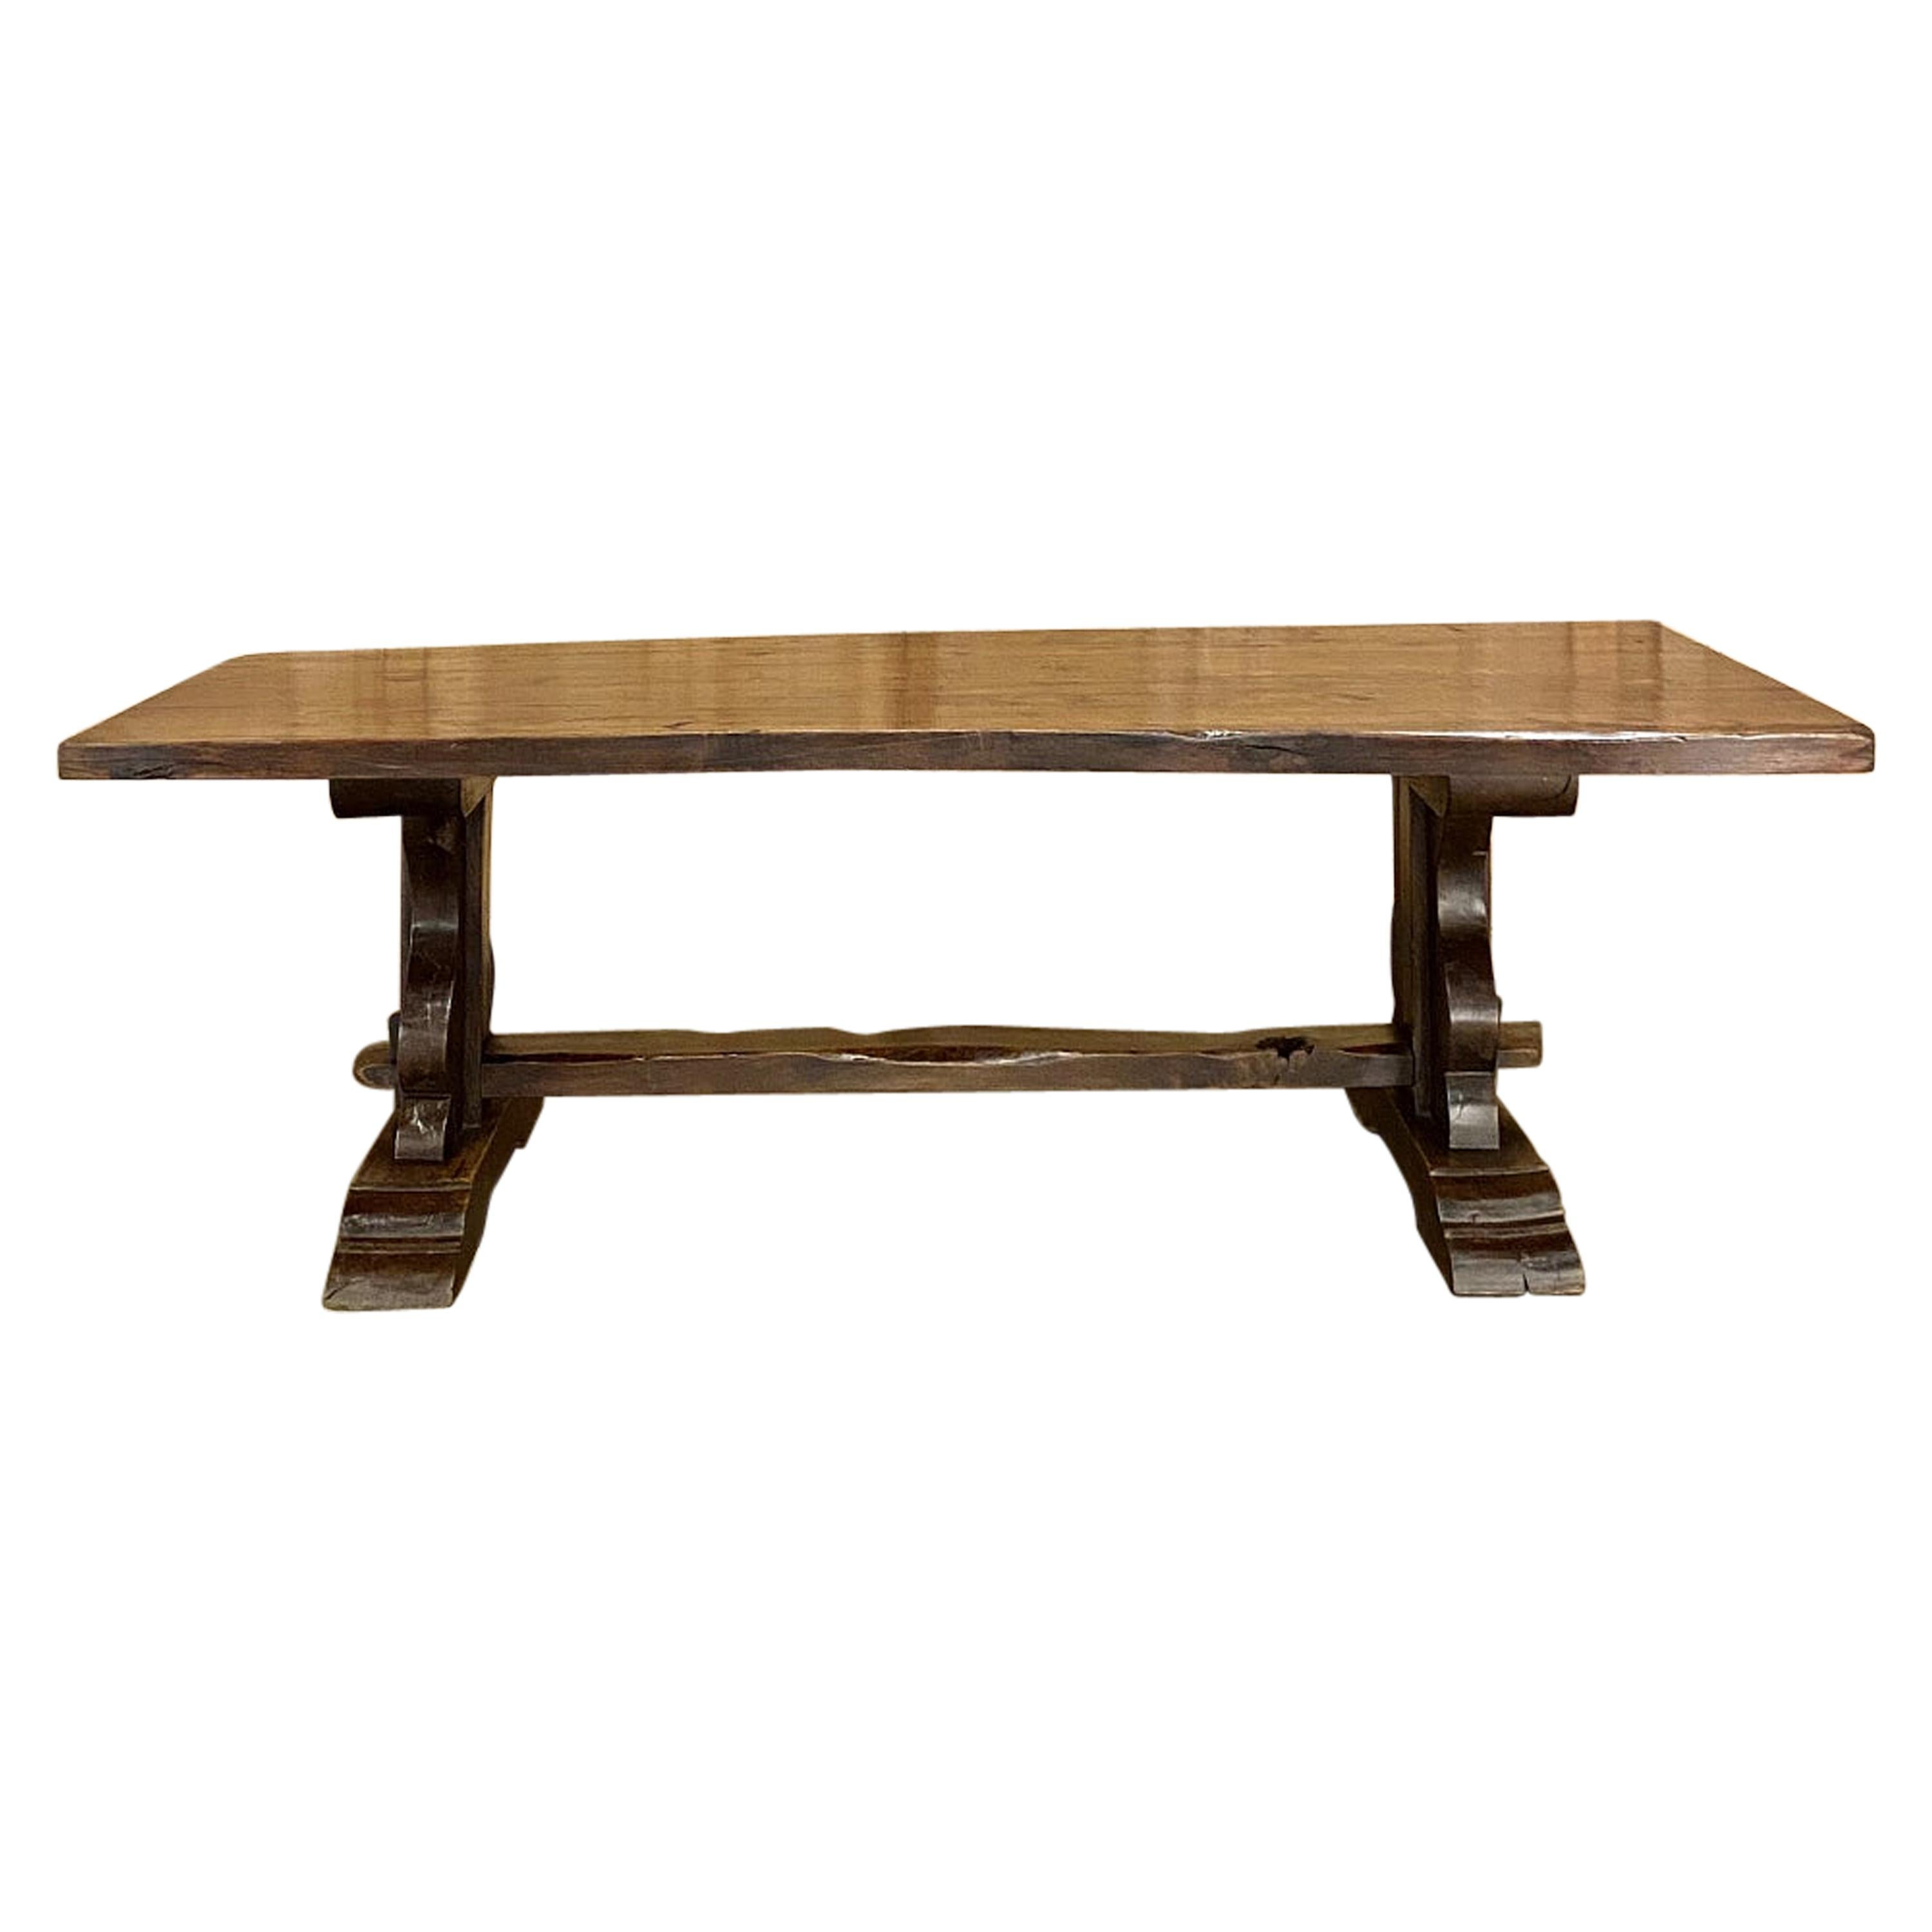 Antique Country French Rustic Trestle Dining Table